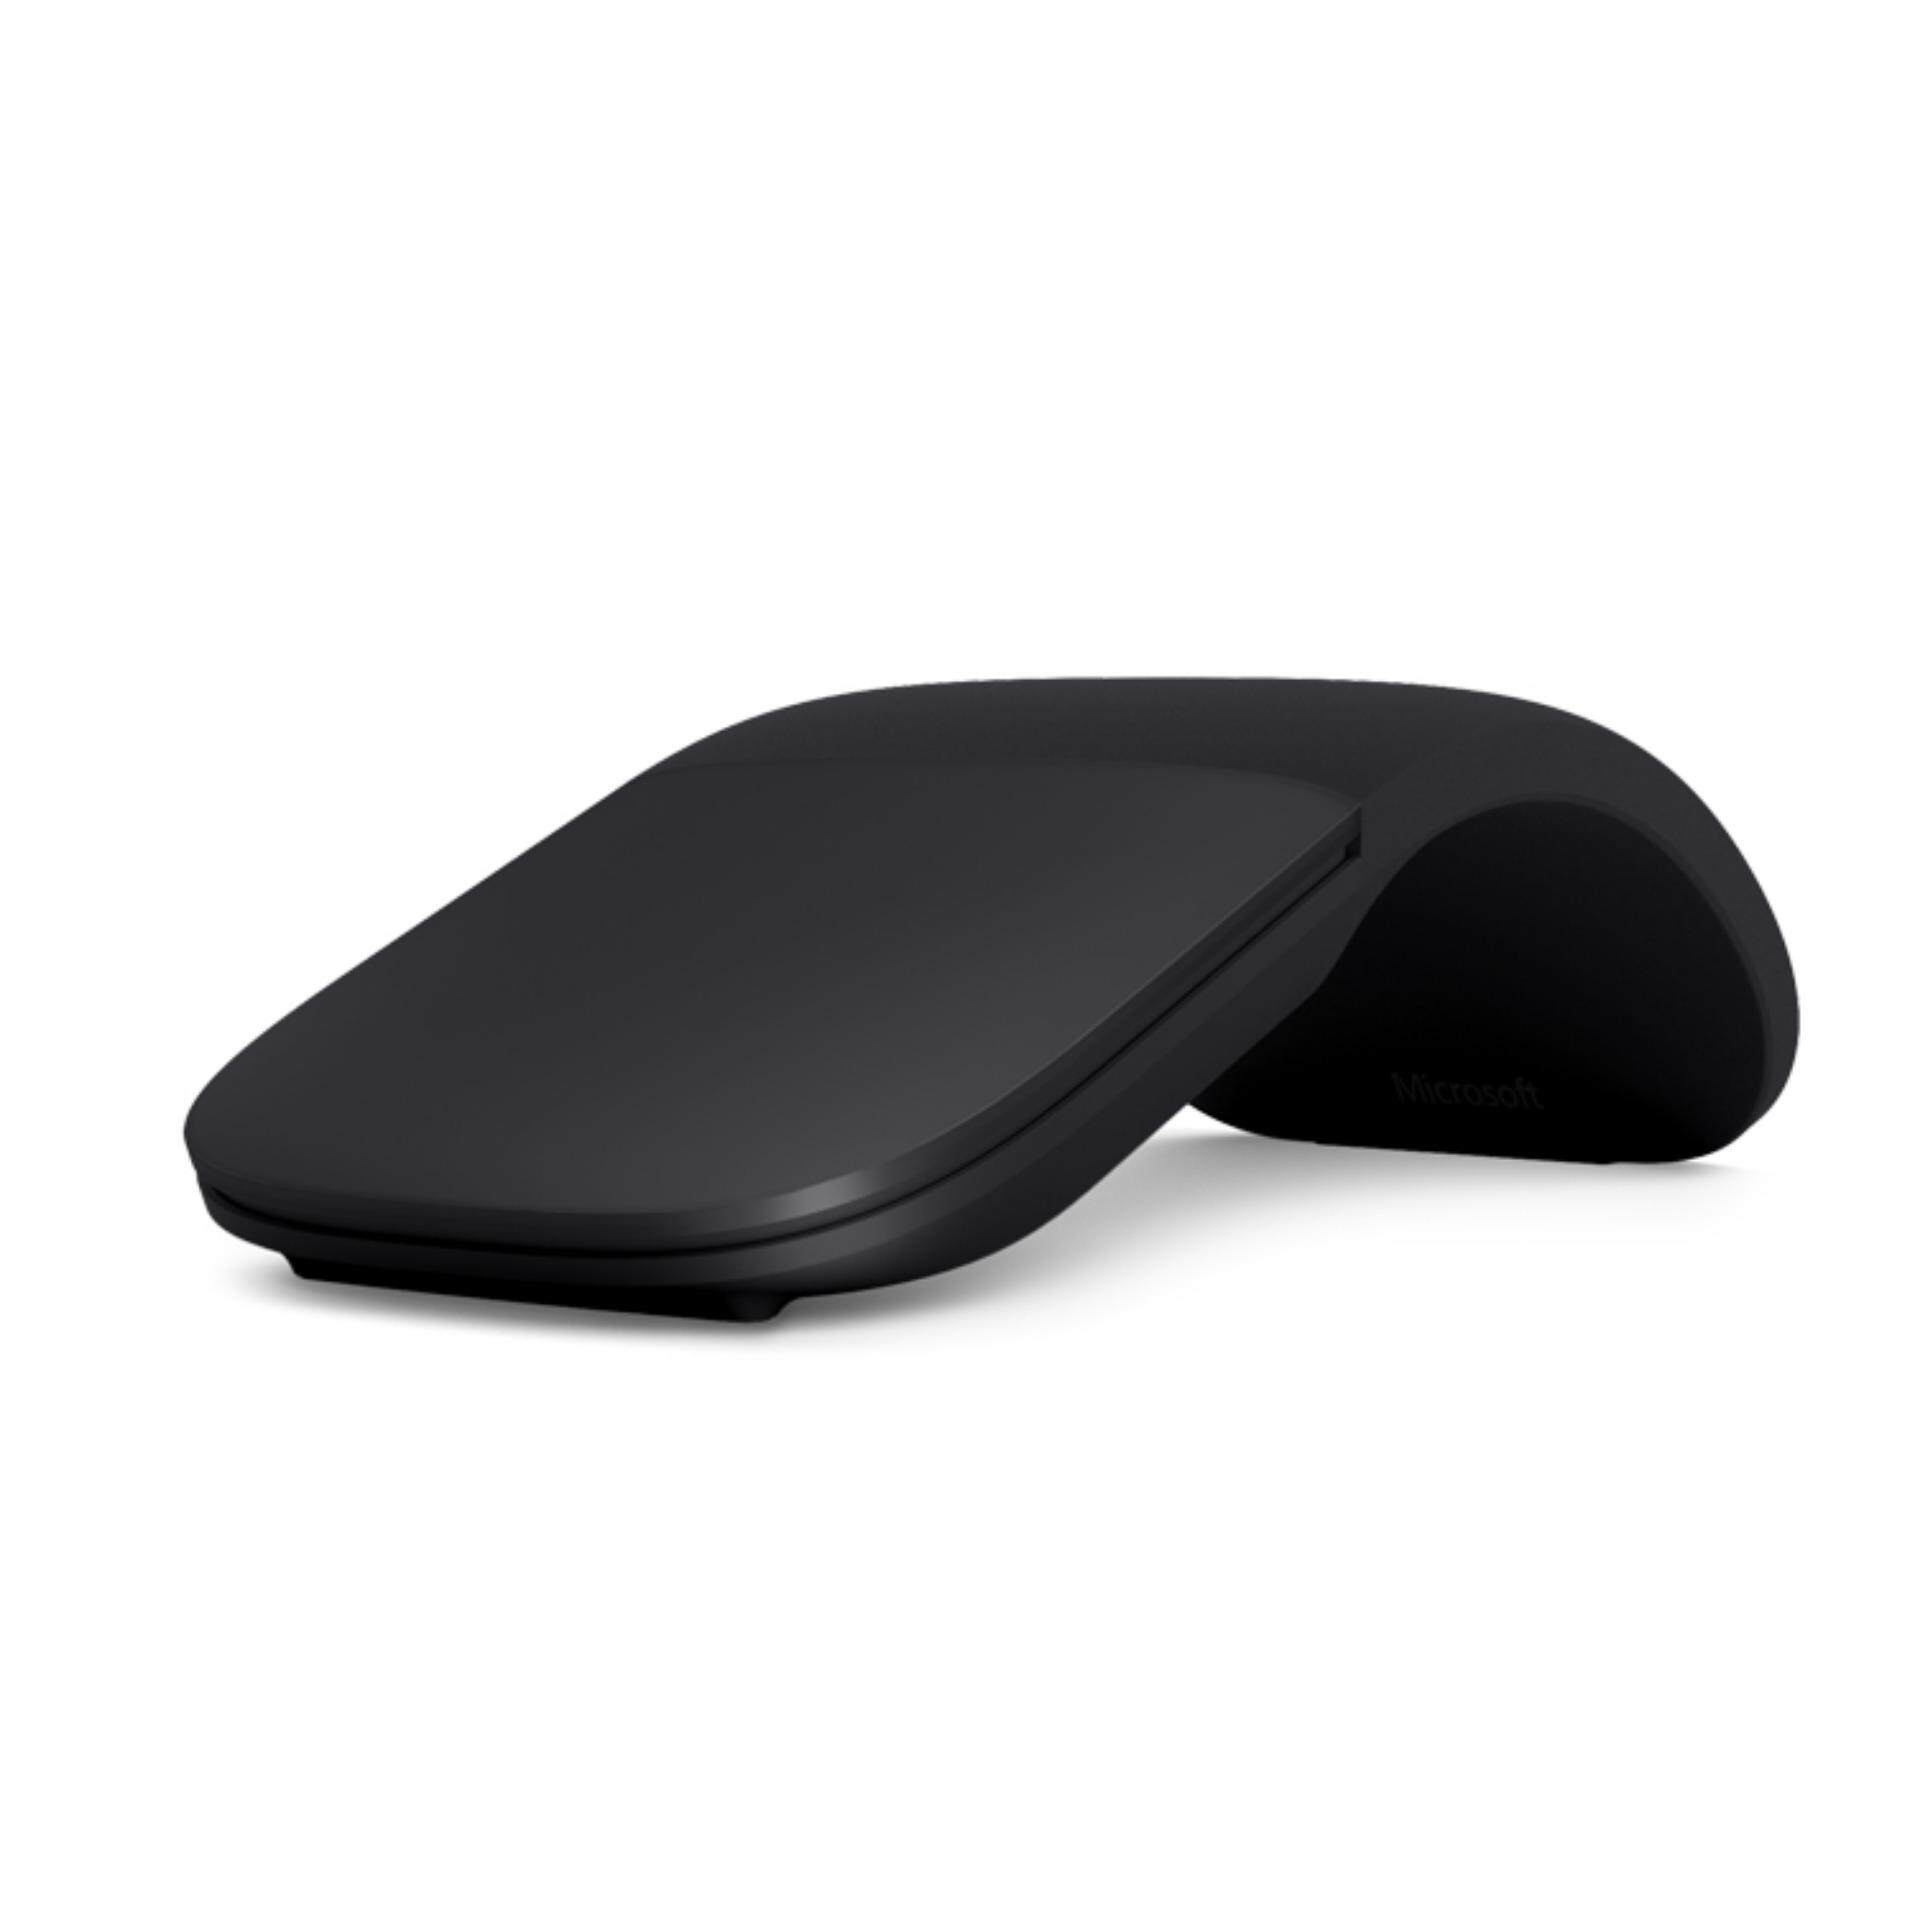 [เมาส์บลูทูธ] Microsoft Arc Touch Mouse Bluetooth McsAcc